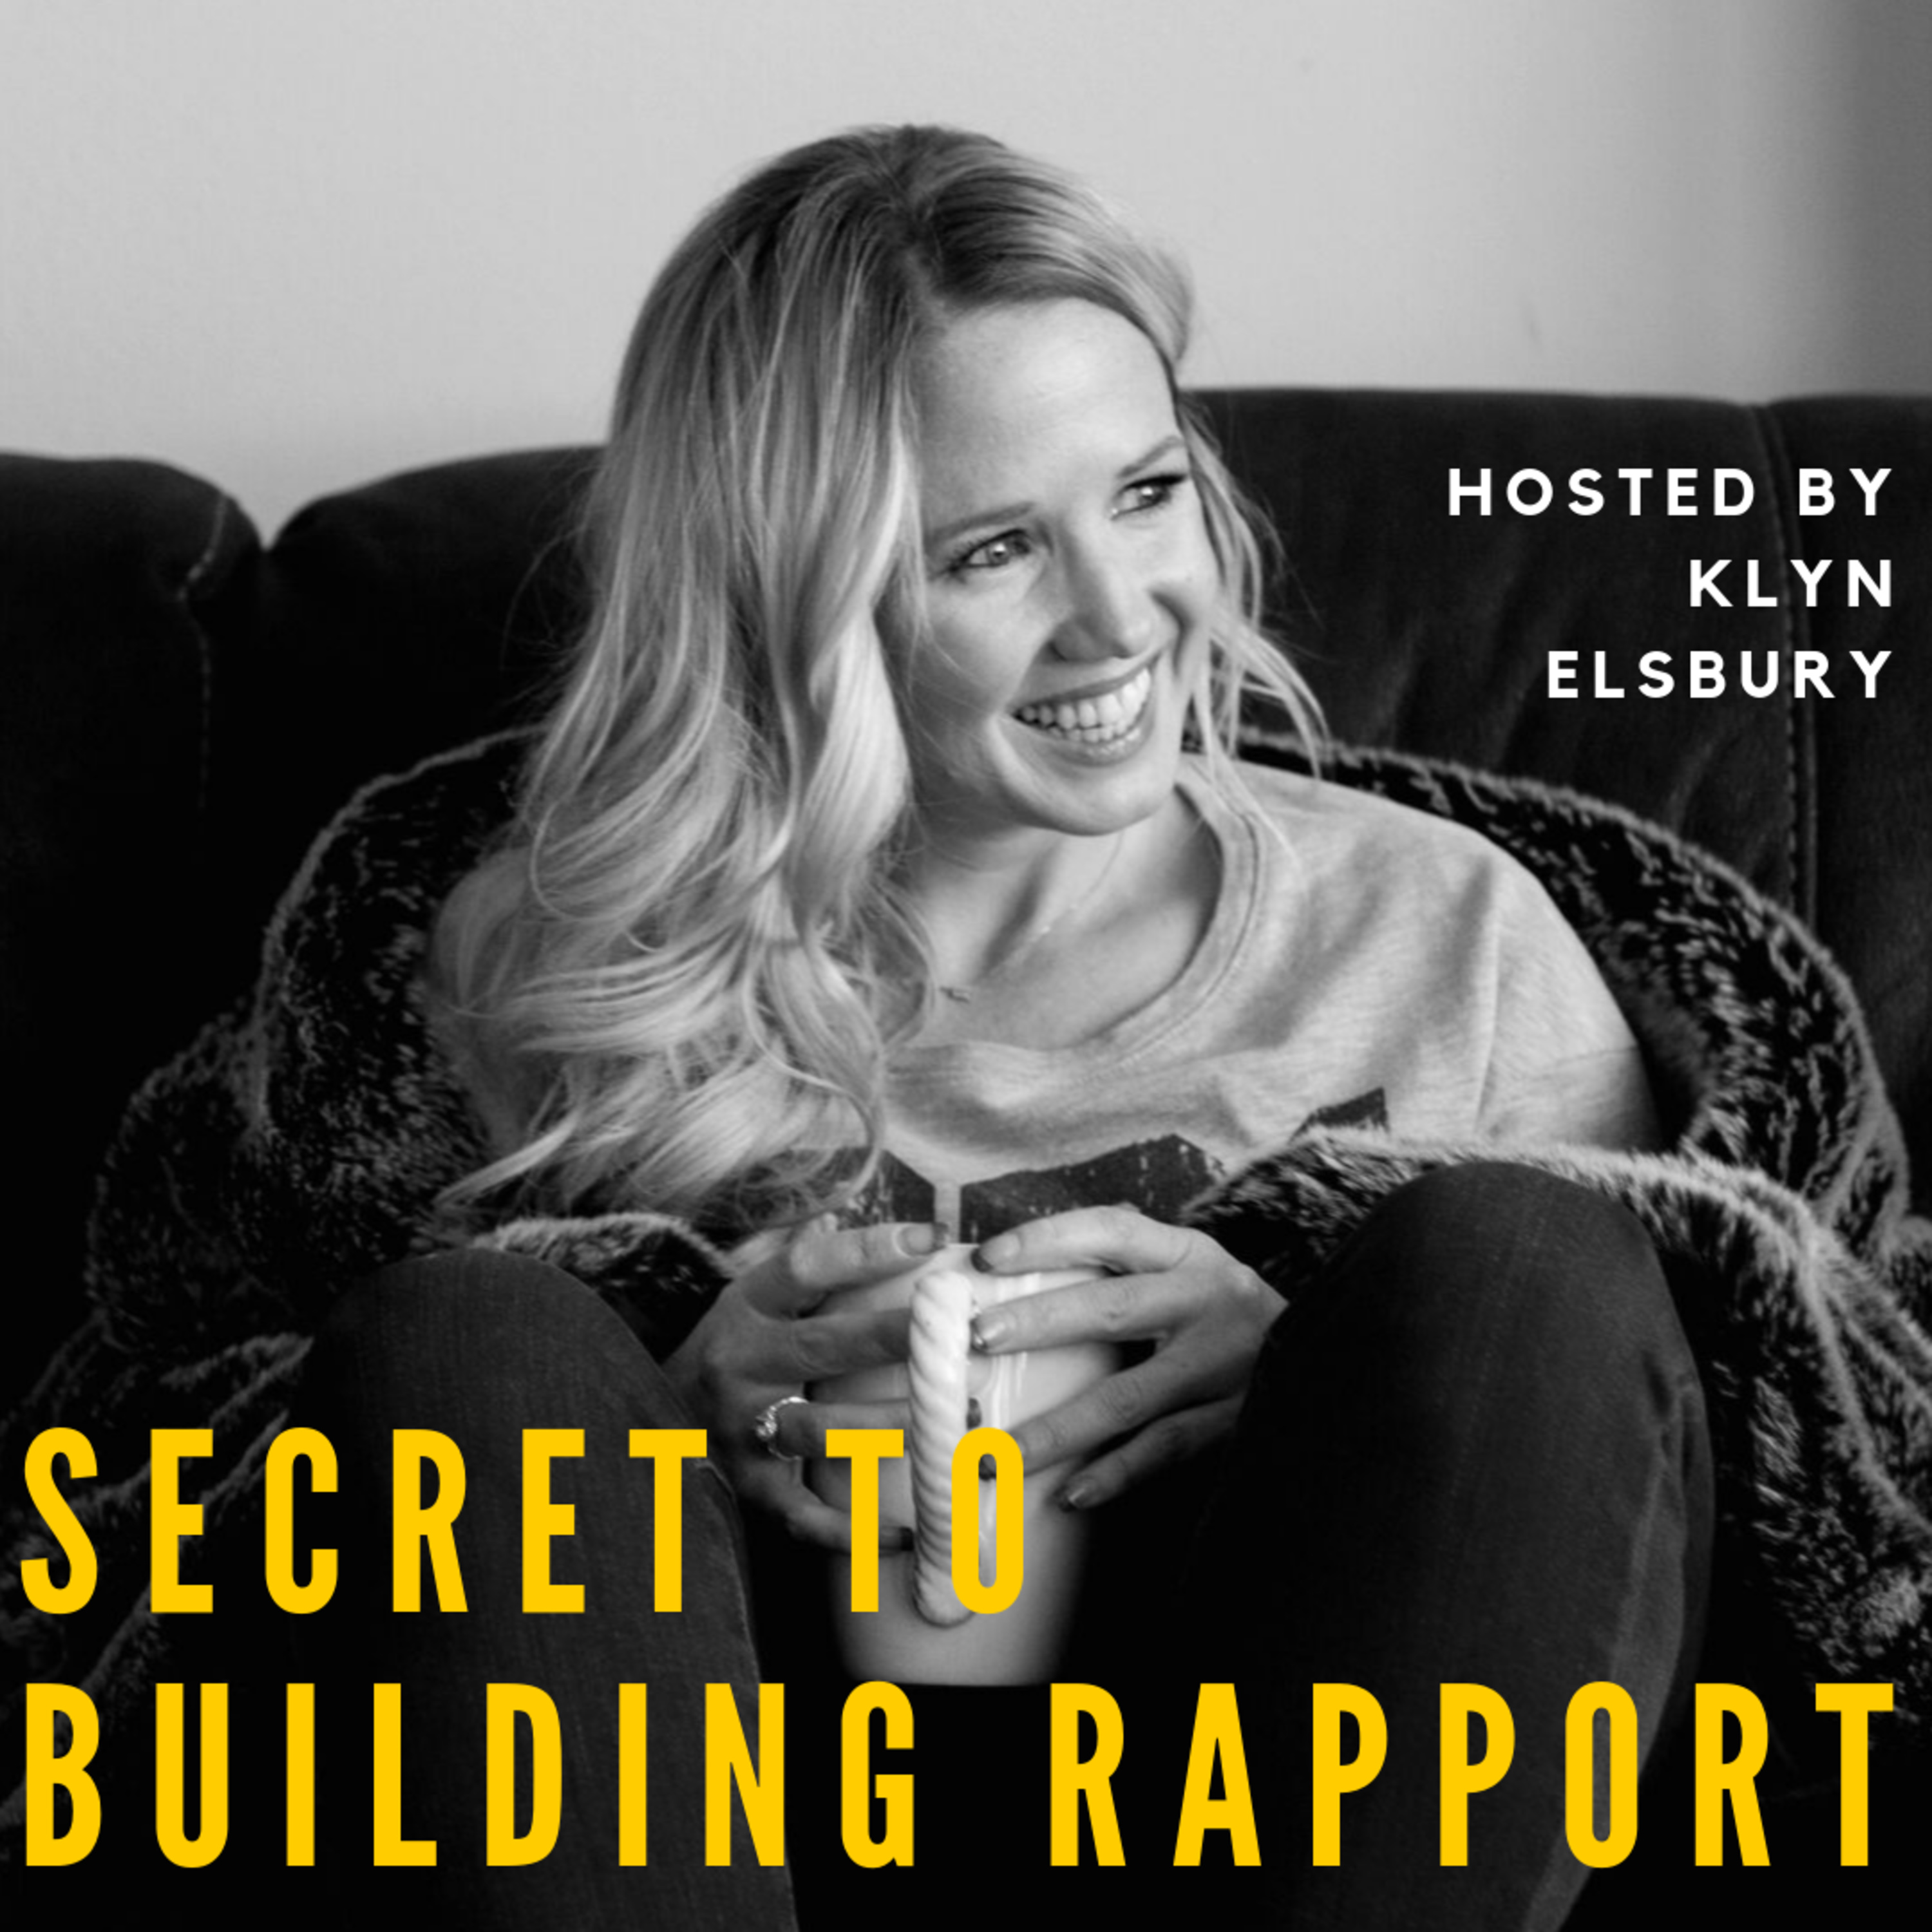 How to build rapport using nlp  with Klyn Elsbury